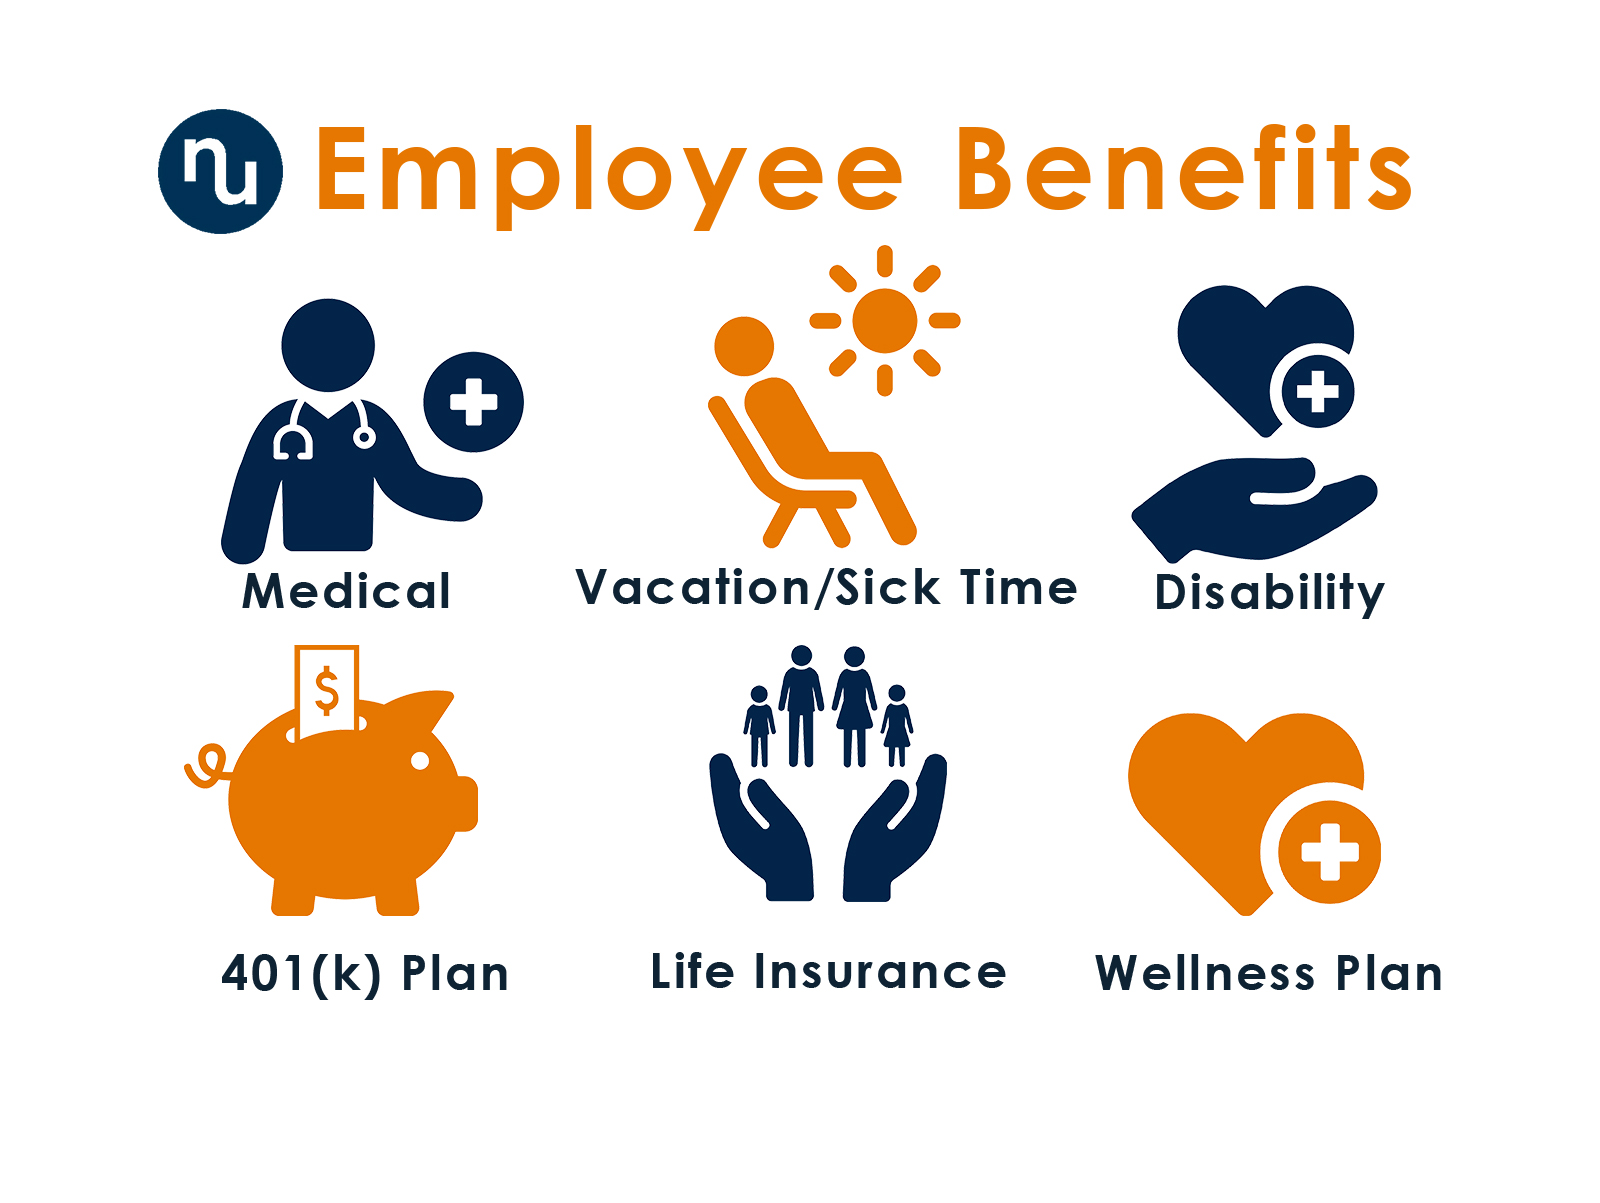 Employee-Benefits-small-3.jpg